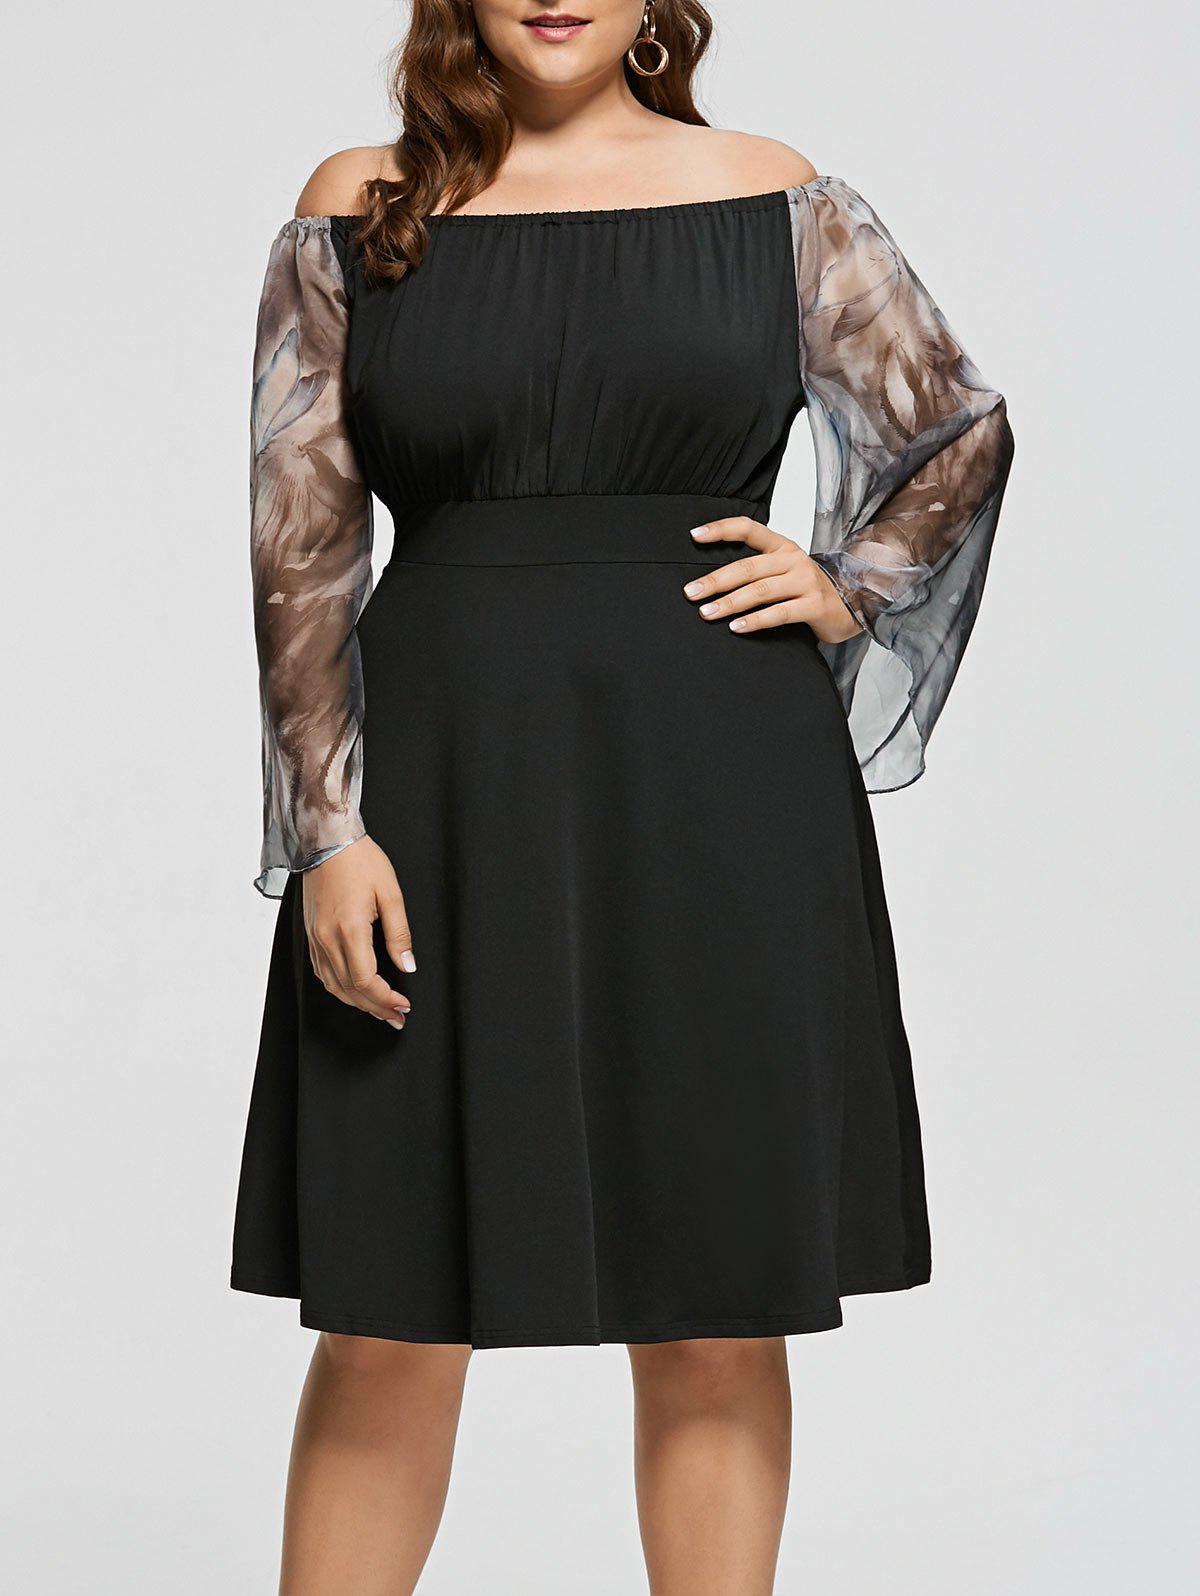 Plus Size Printed High Waist Off Shoulder DressWOMEN<br><br>Size: 2XL; Color: BLACK; Style: Casual; Material: Cotton,Polyester; Silhouette: A-Line; Dresses Length: Knee-Length; Neckline: Off The Shoulder; Sleeve Type: Flare Sleeve; Sleeve Length: Long Sleeves; Pattern Type: Floral; With Belt: No; Season: Fall,Spring; Weight: 0.3500kg; Package Contents: 1 x Dress;